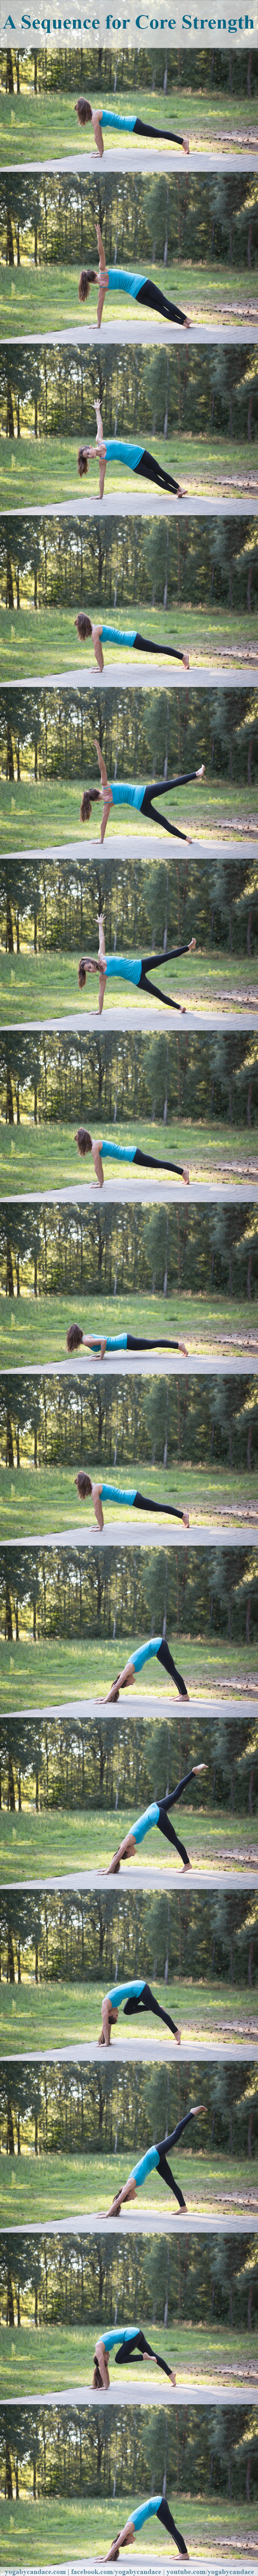 Pin it! A yoga sequence for core strength you can do right from your home.